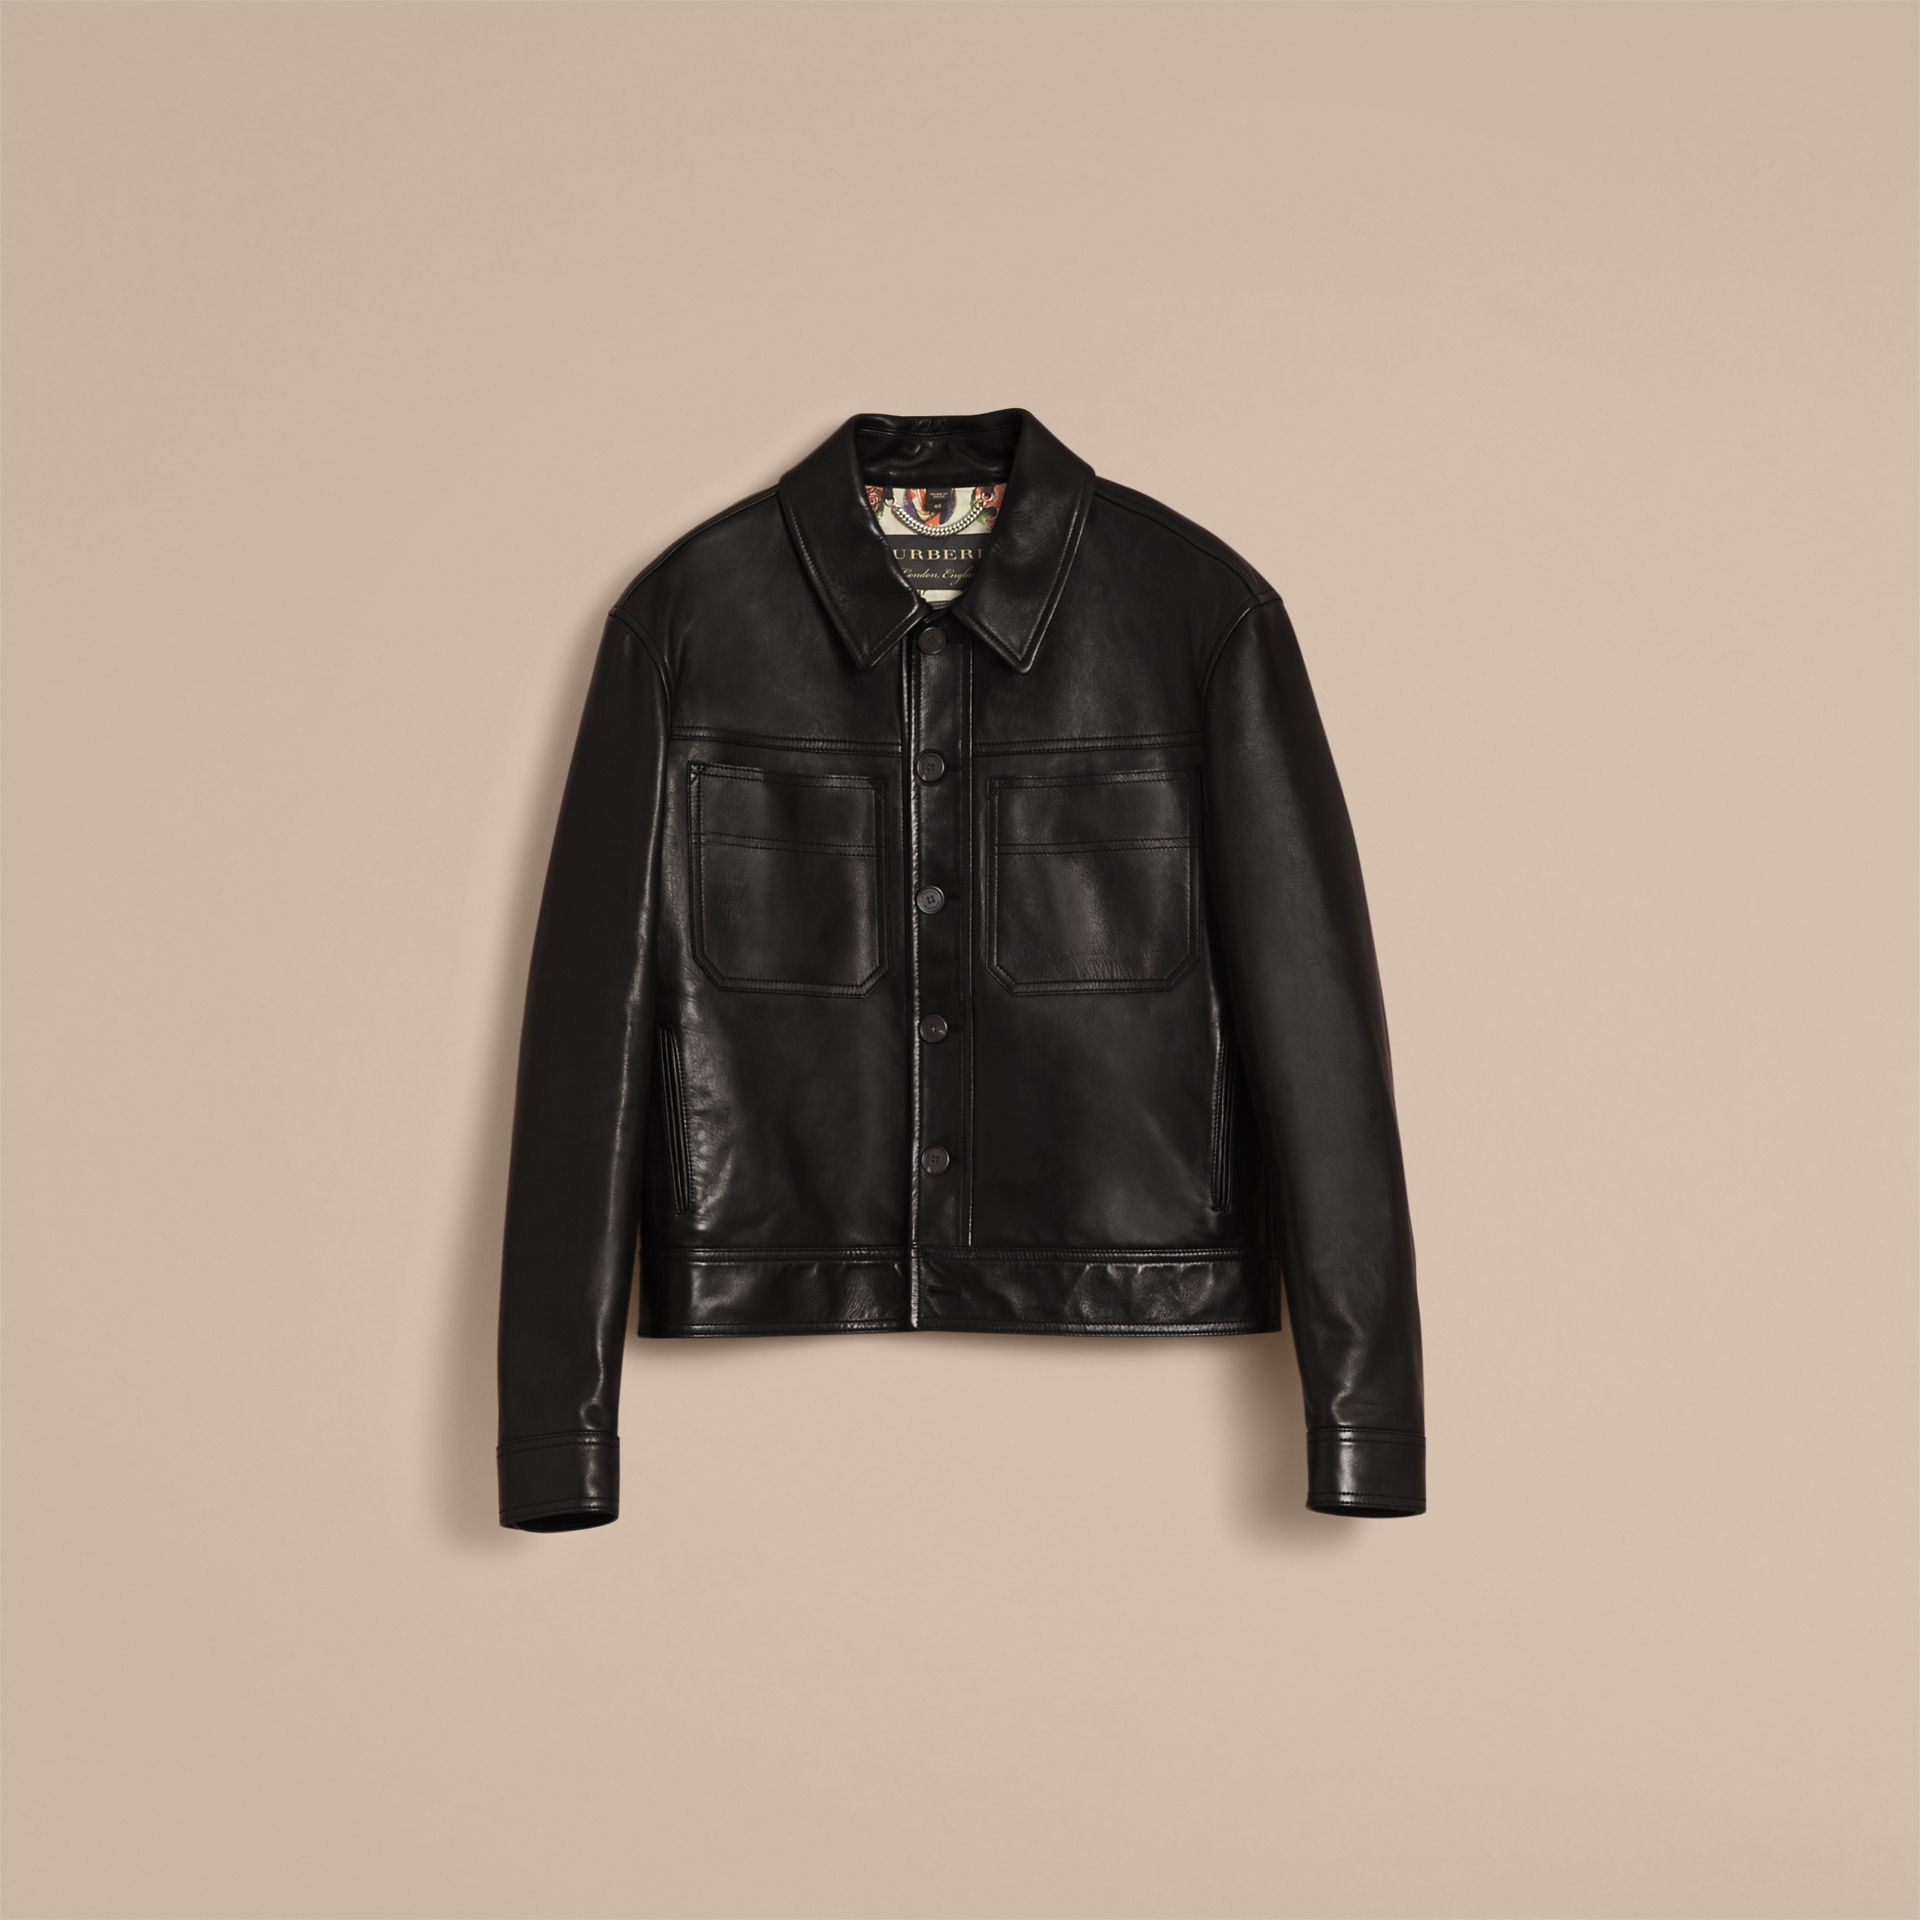 Burberry Black Leather Trucker Jacket with Pallas Heads Print Lining